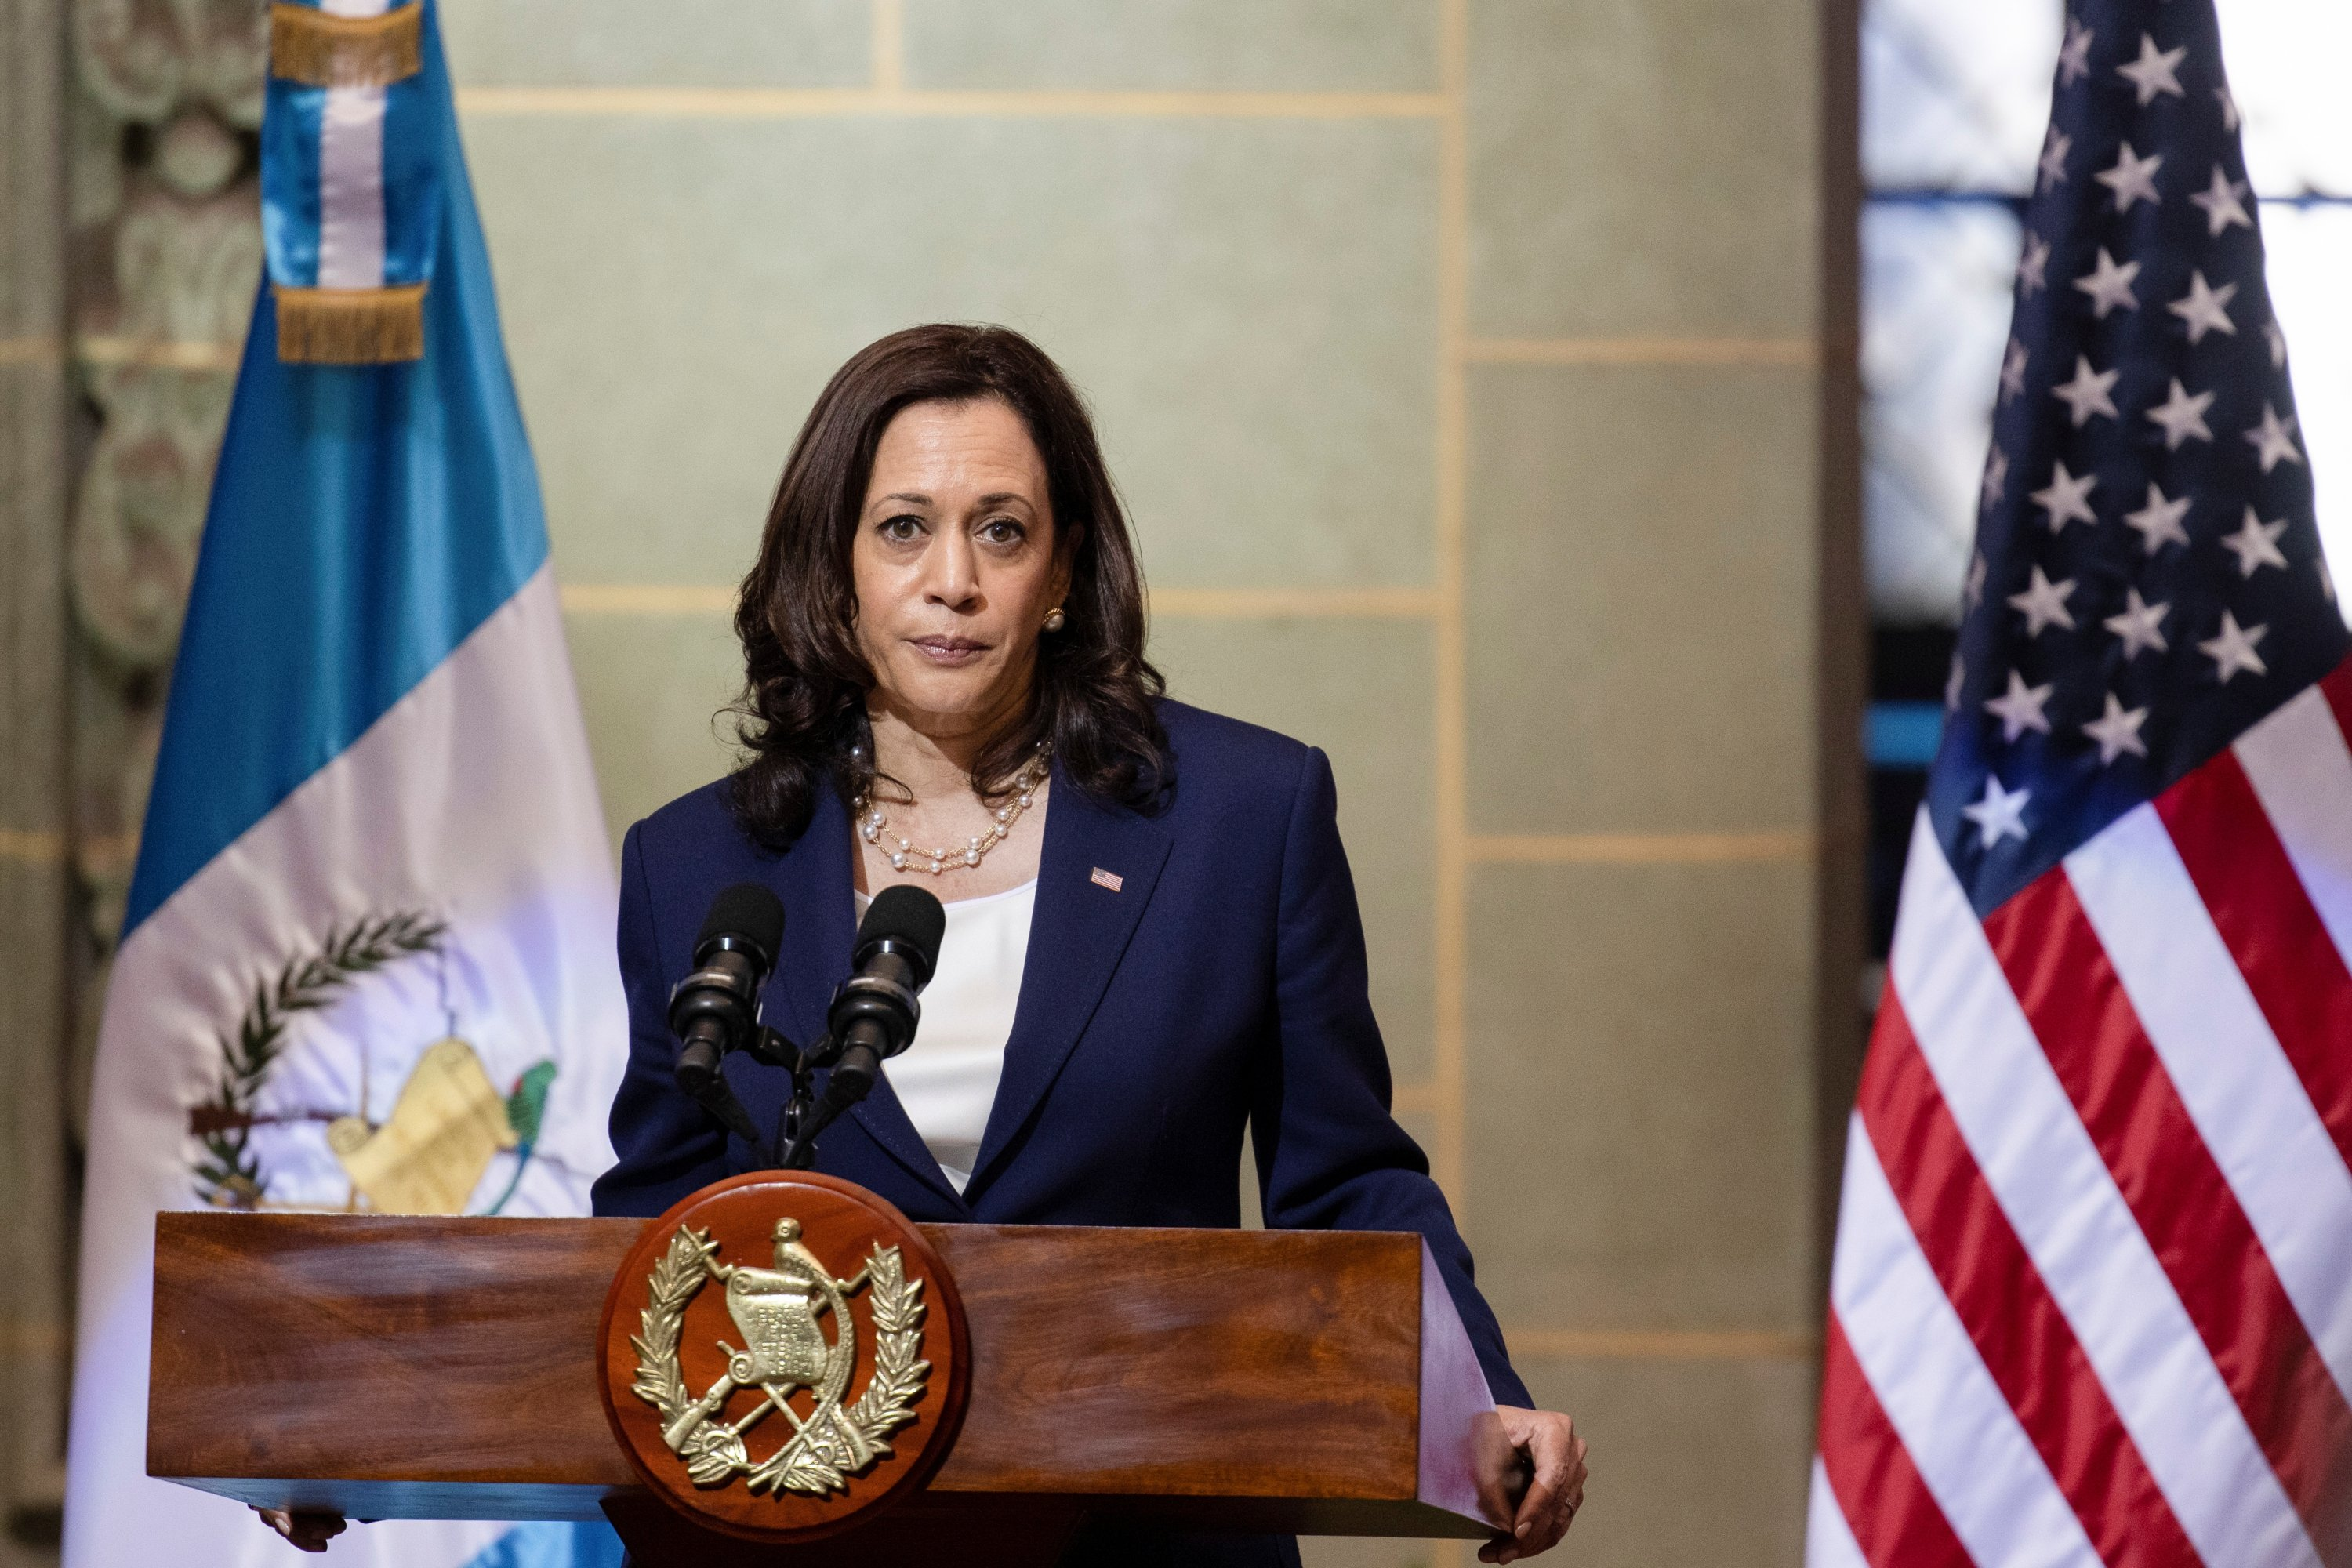 U.S. Vice President Kamala Harris speaks about migrants heading to the U.S. at a news conference with Guatemalan President Alejandro Giammattei during her visit, in Guatemala City, Guatemala, June 7, 2021. (Reuters Photo)